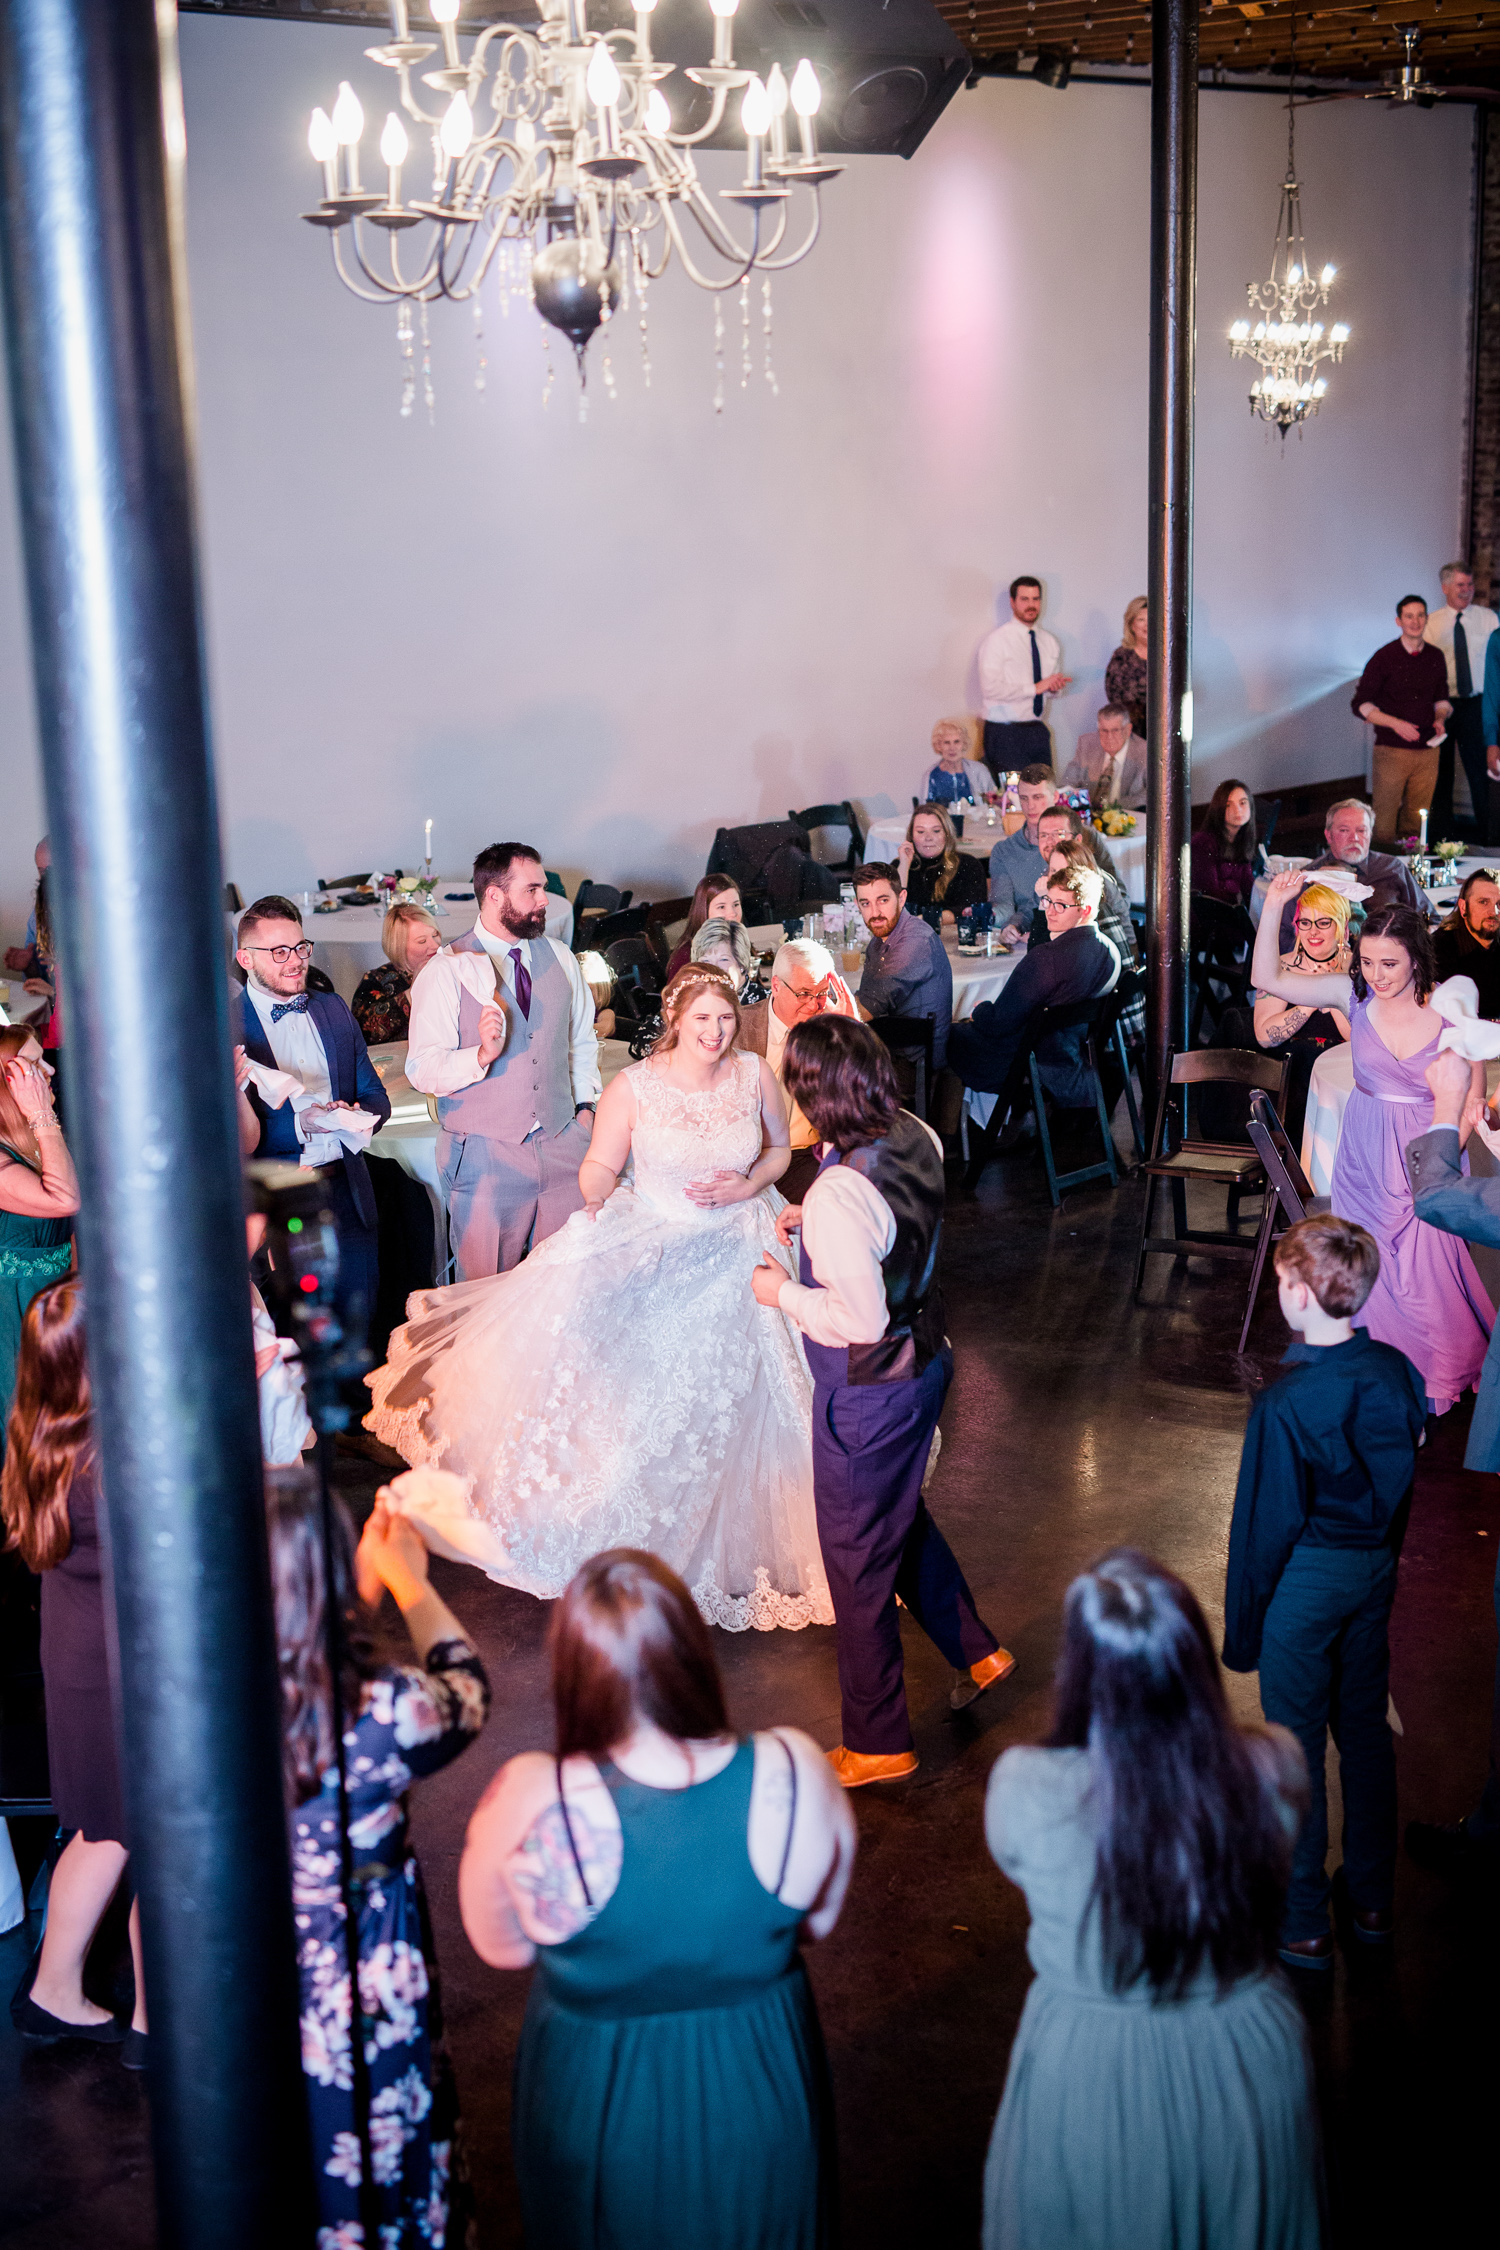 Downtown Knoxville Wedding Venue // Central Avenue Reception //  DancingDowntown Knoxville Wedding Venue // Central Avenue Reception //  Dancing